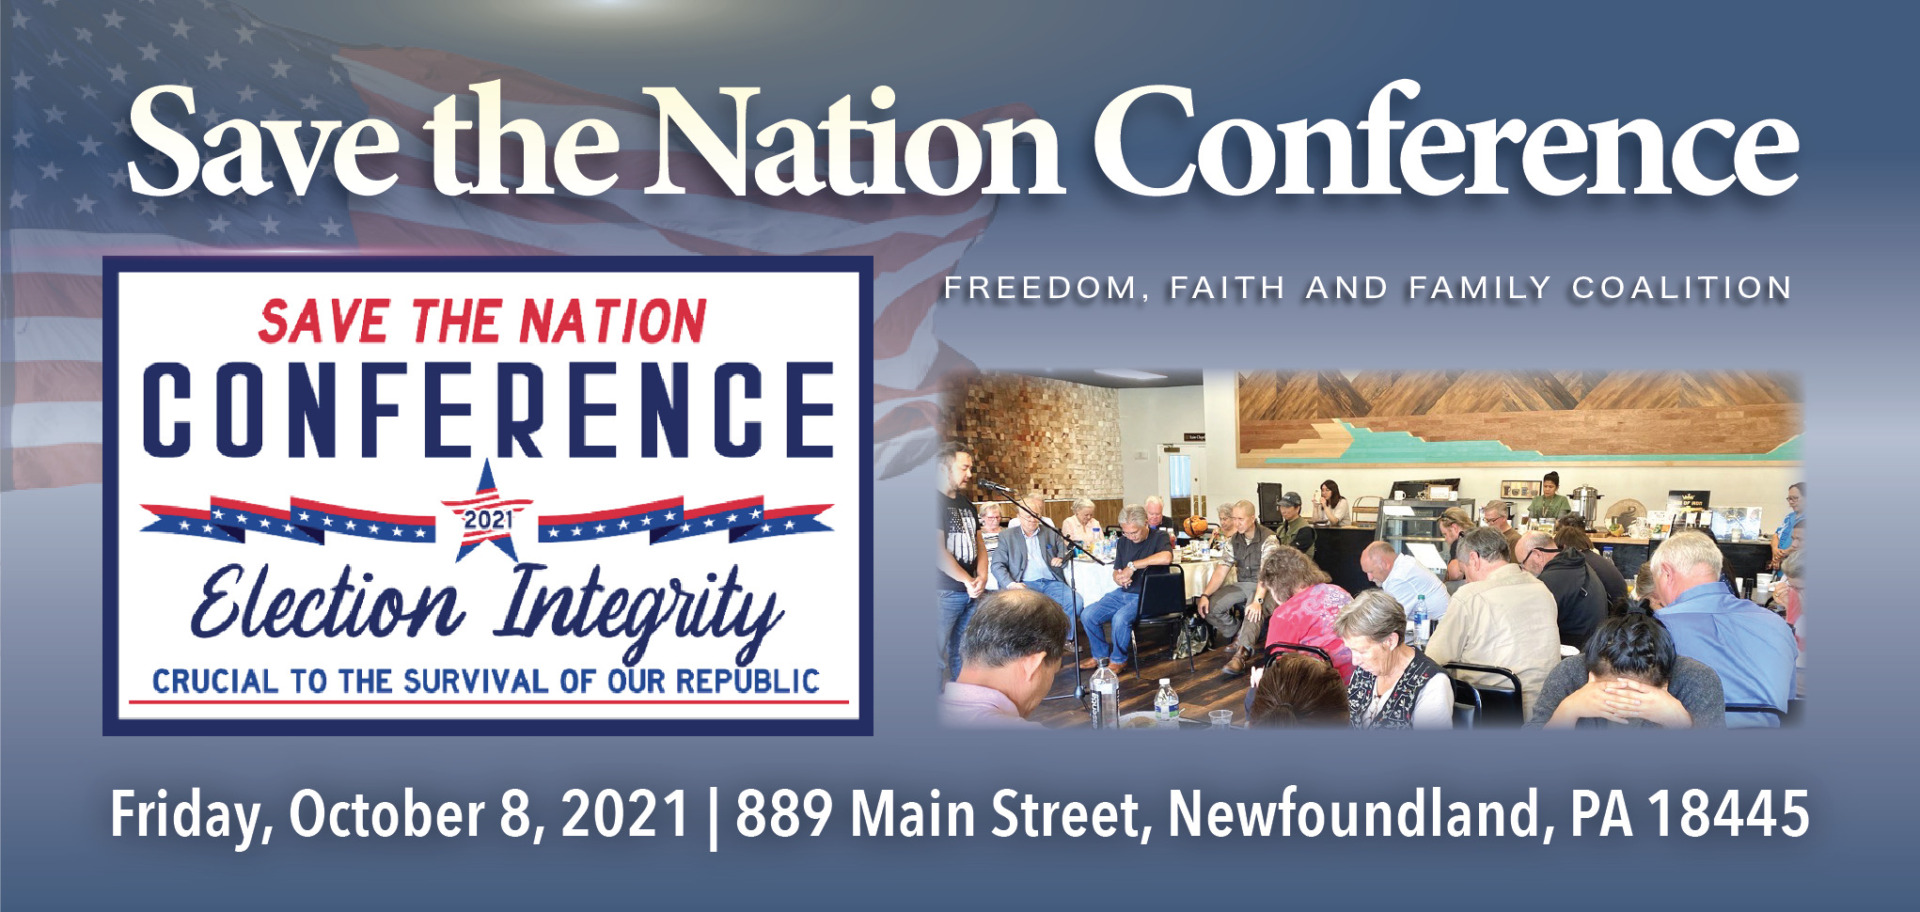 """FFFC """"Save the Nation"""" Conference - October 8, 2021 - Freedom, Faith and Family Coalition - We hold these truths to be self-evident"""